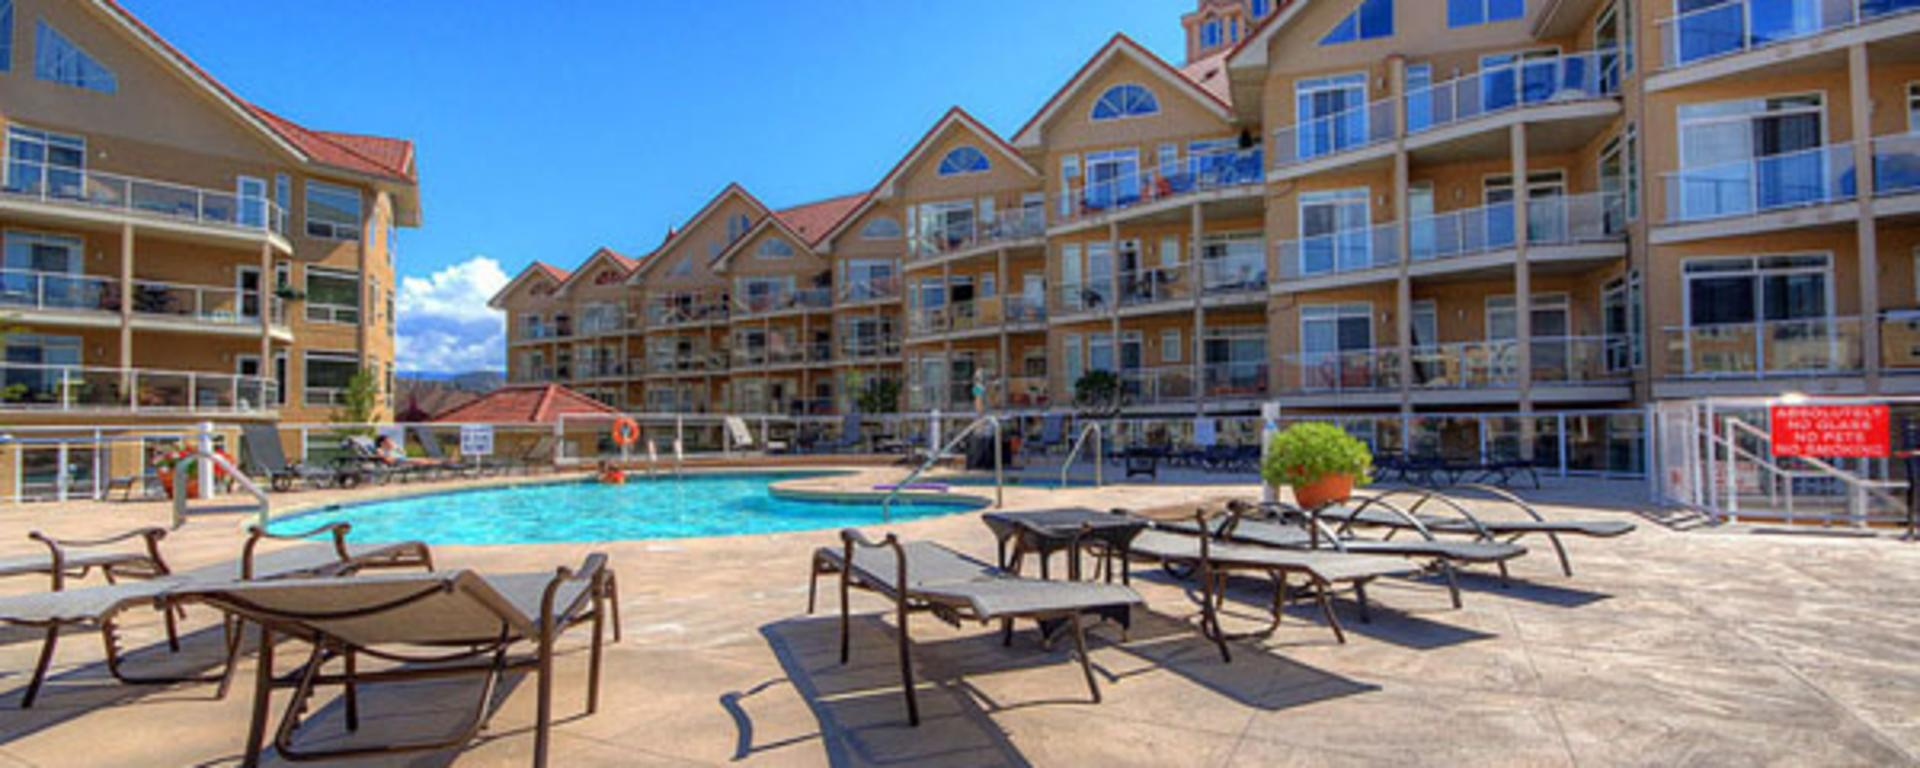 Kelowna Resort Accommodations Image